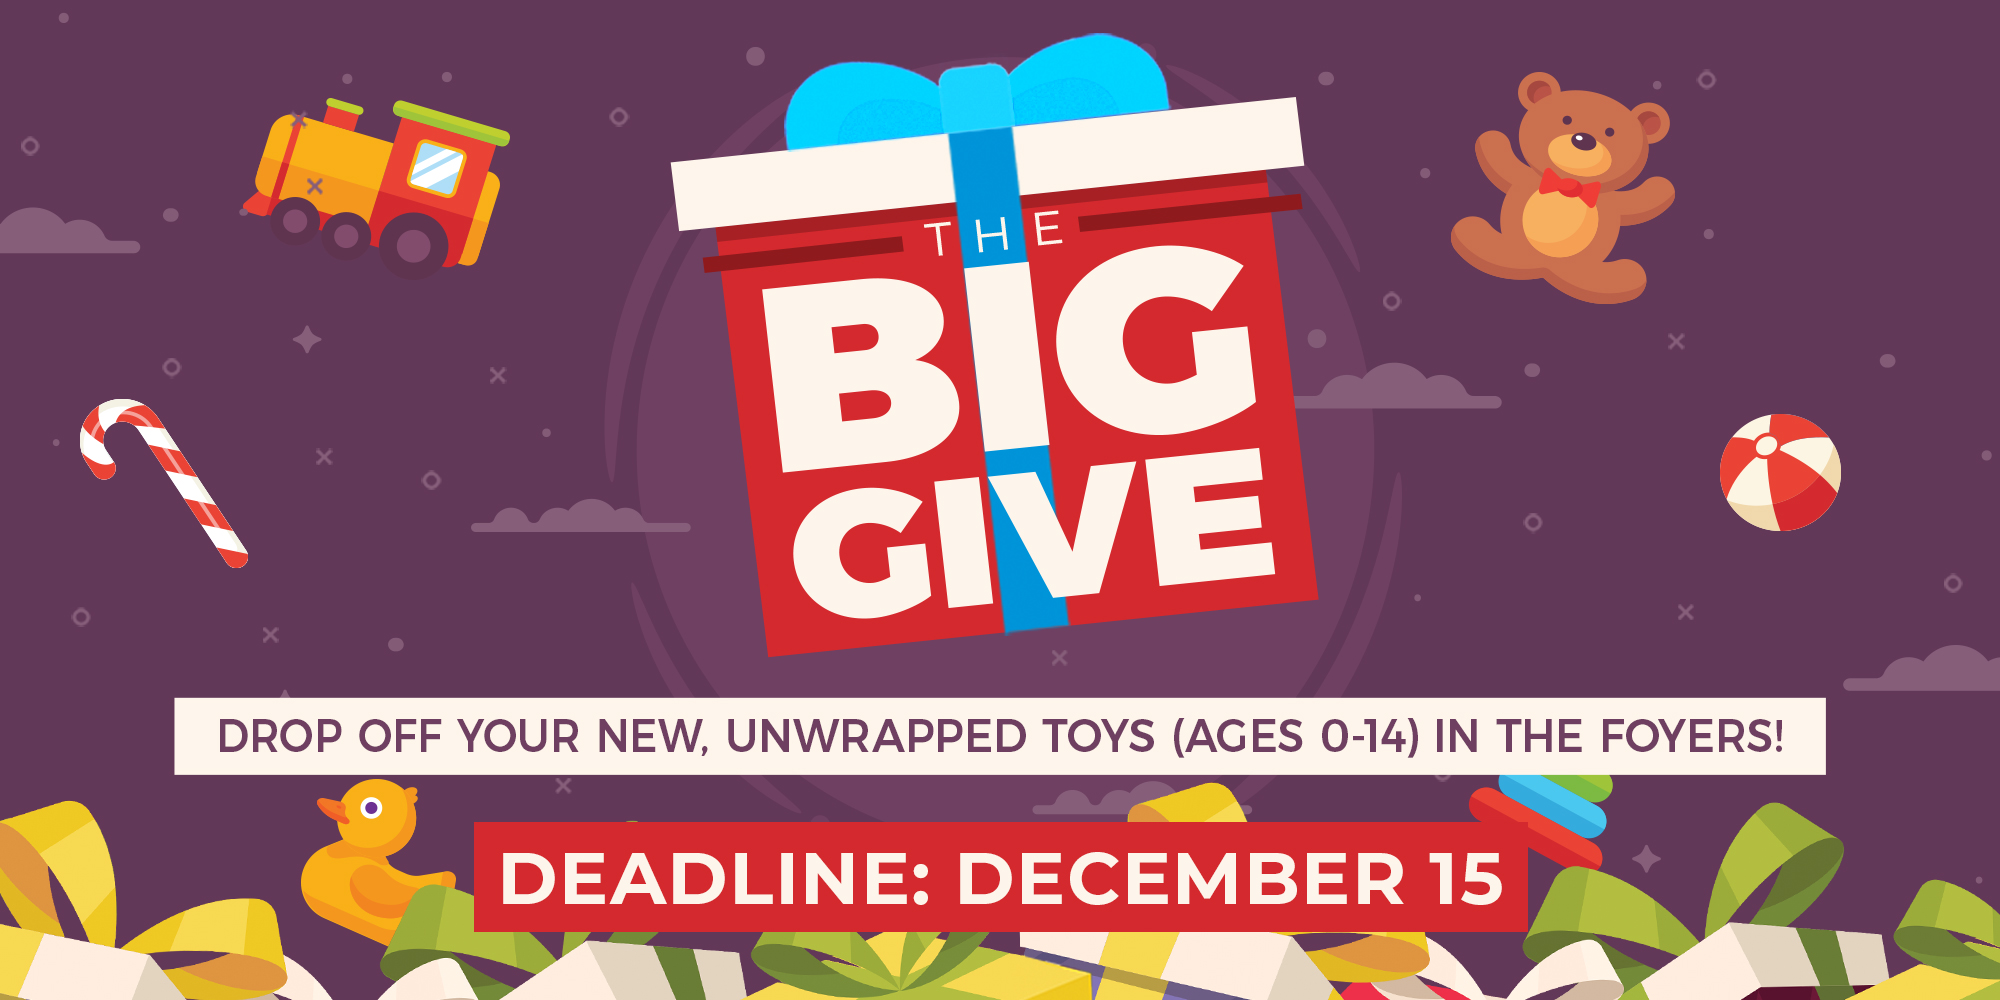 The Big Give Drop Off Your New, Unwrapped Toys (Ages 0-14) In the Foyers! Deadline: December 15